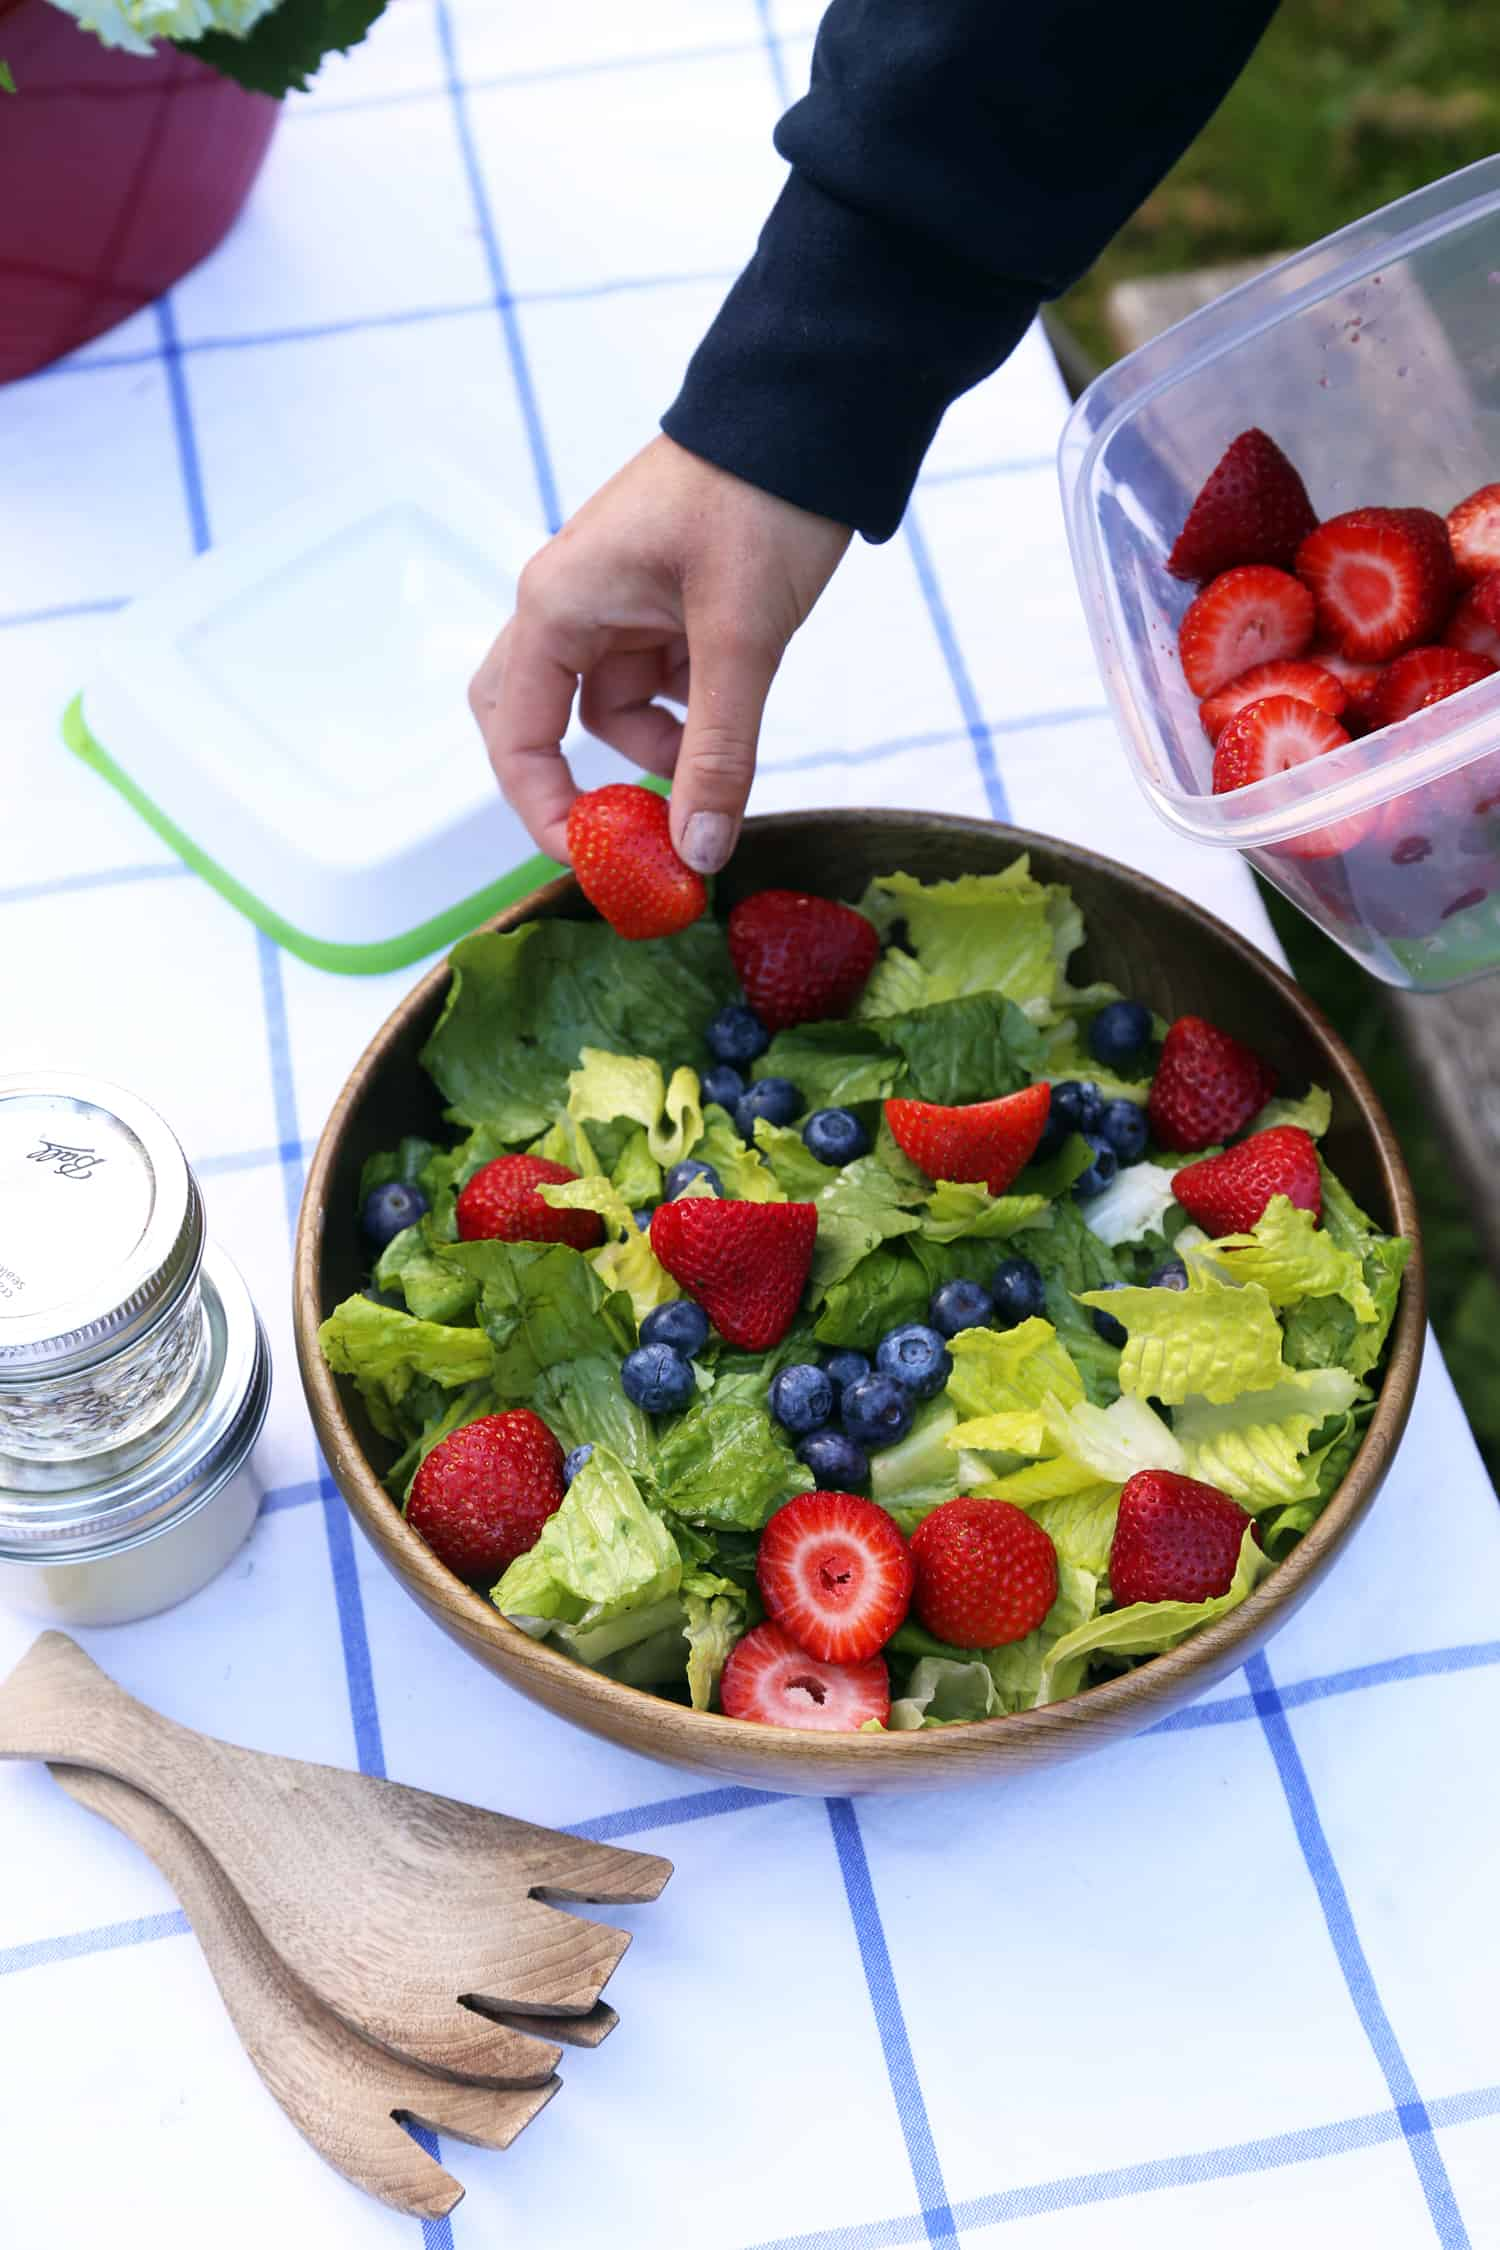 Red, White and Blue Summer Fruit Salad with Creamy Lemon Dressing is the perfect light, refreshing summer salad to bring to parties, picnics and potlucks. fruit salad recipe | strawberry salad | summer salad lemon dressing | potluck recipe | picnic salad